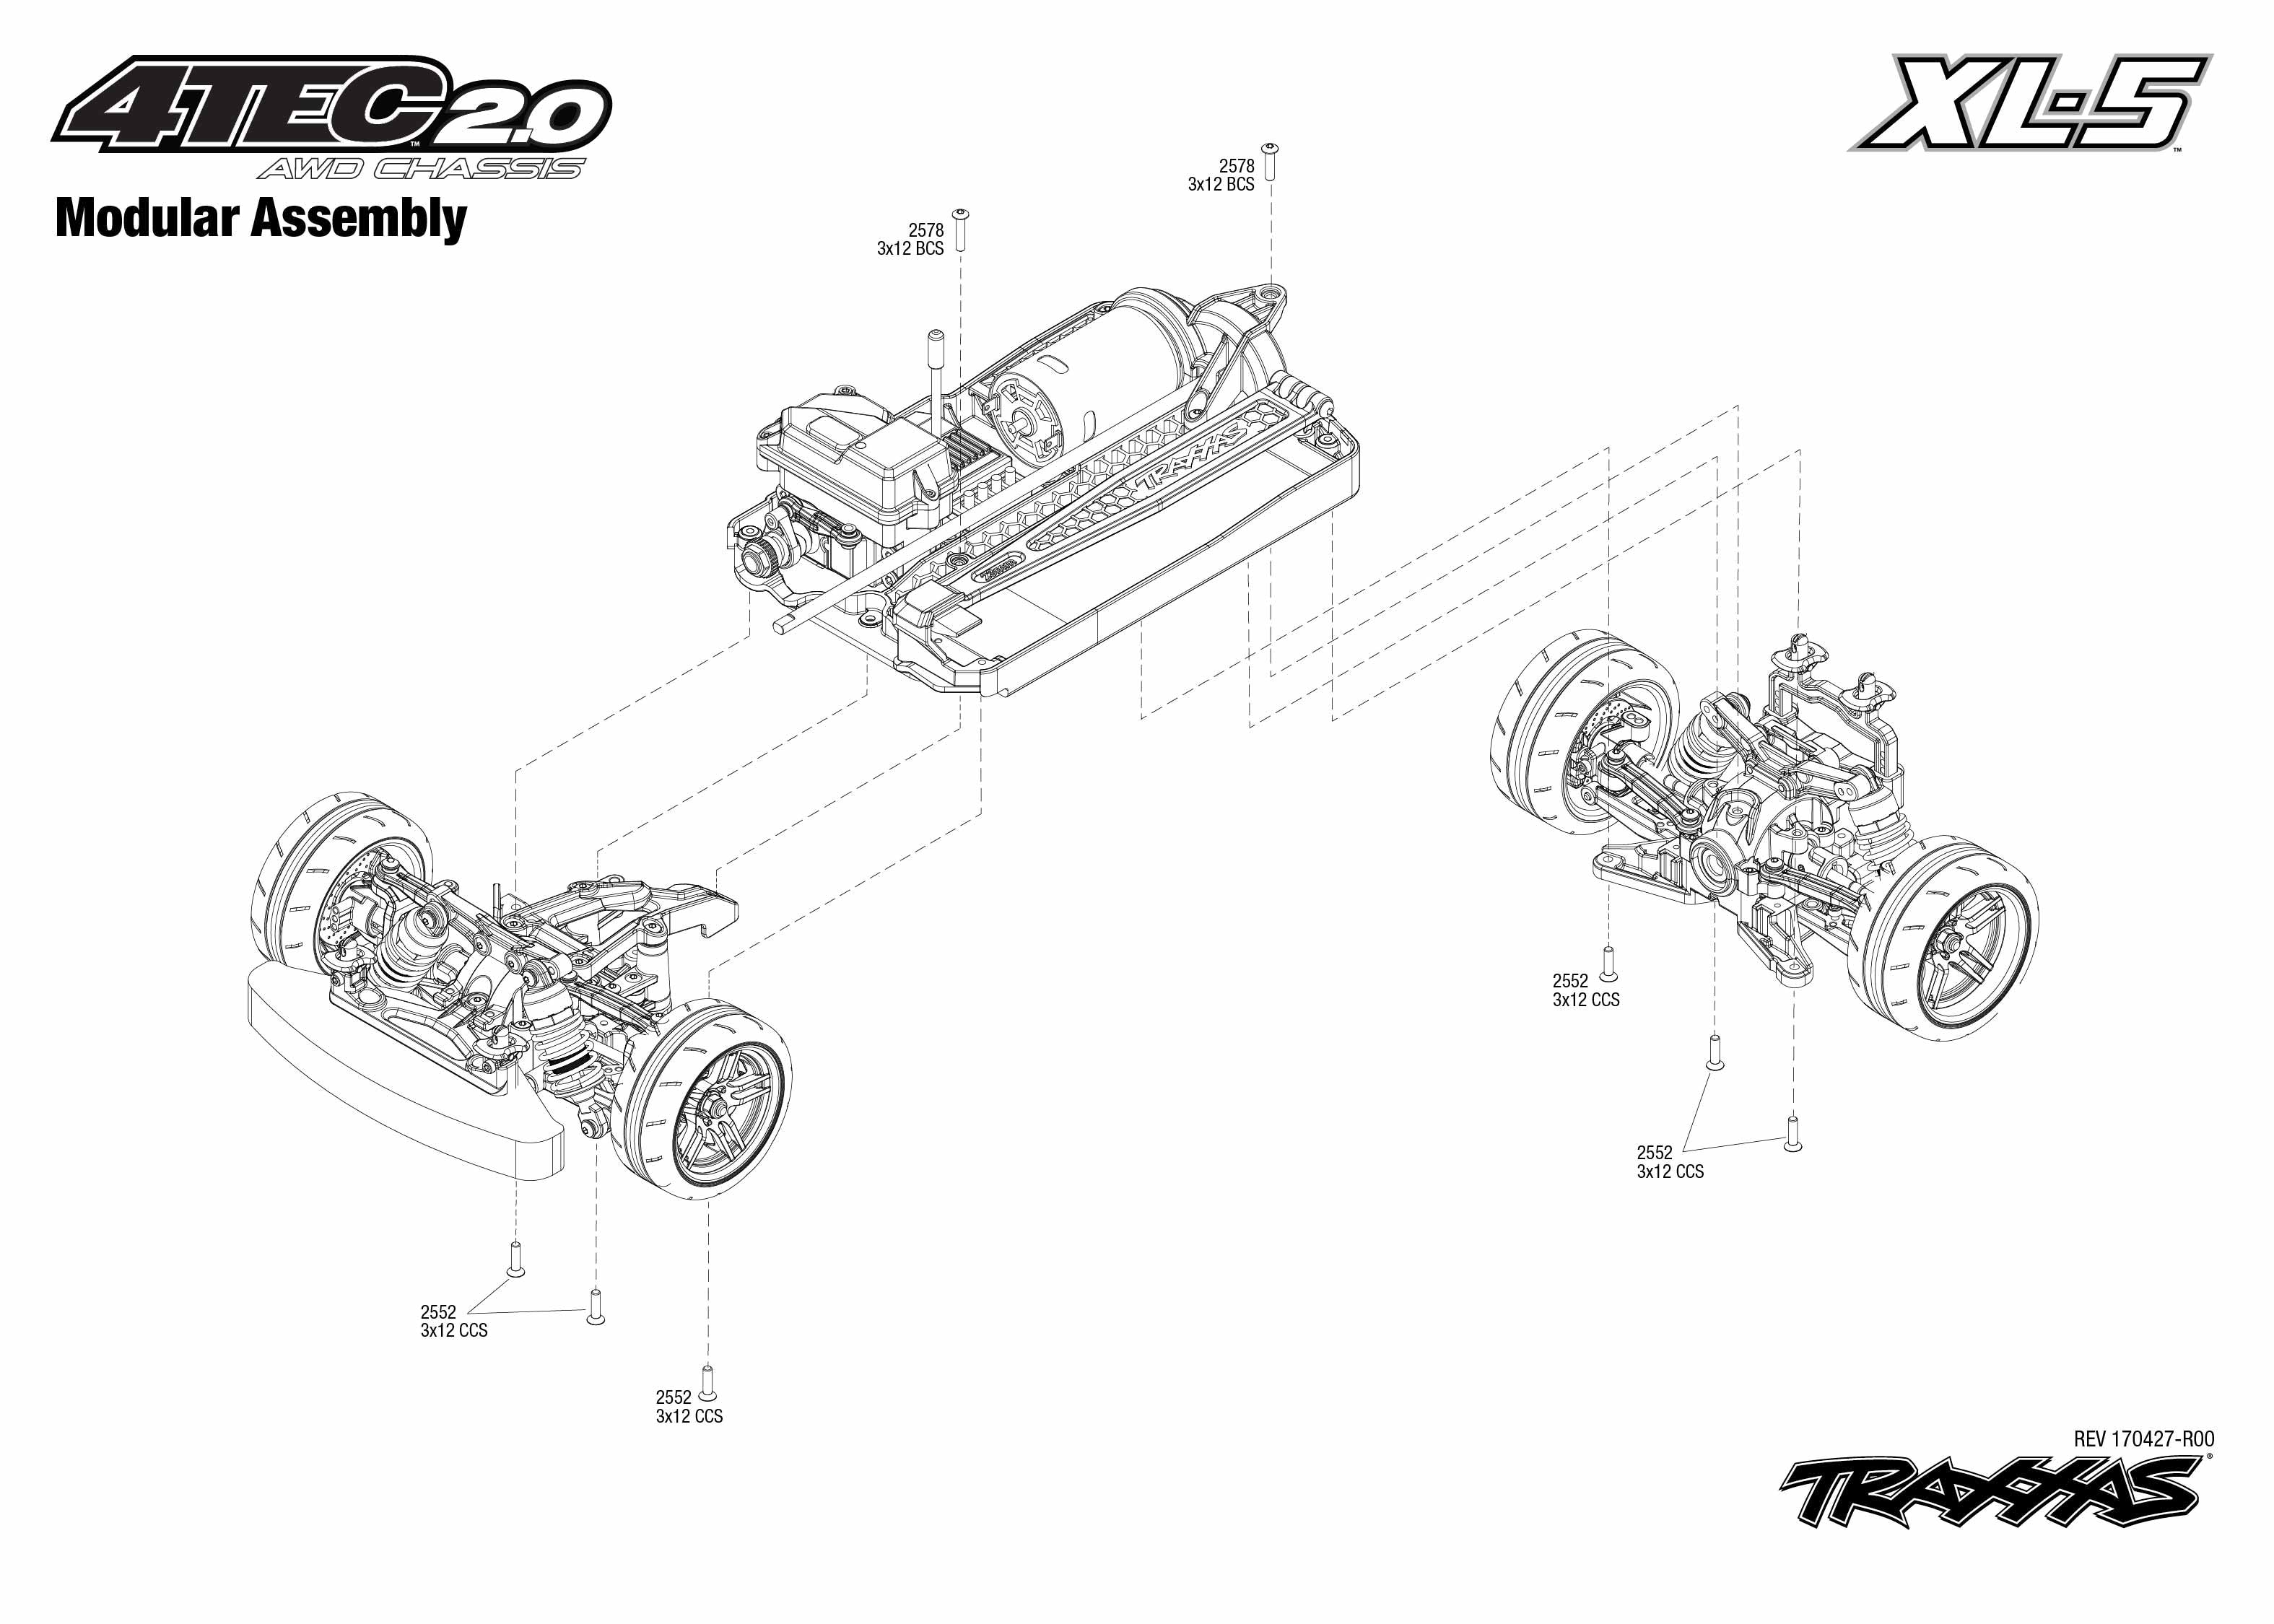 Traxxas 4 Tec Transmission Diagram 34 Wiring Images Stampede Vxl Parts Achterkant 6708 Modularh68564f42f7dfa34e6aa7a14cae03e0c0 Exploded View 2 0 Xl 5 Modular Assembly